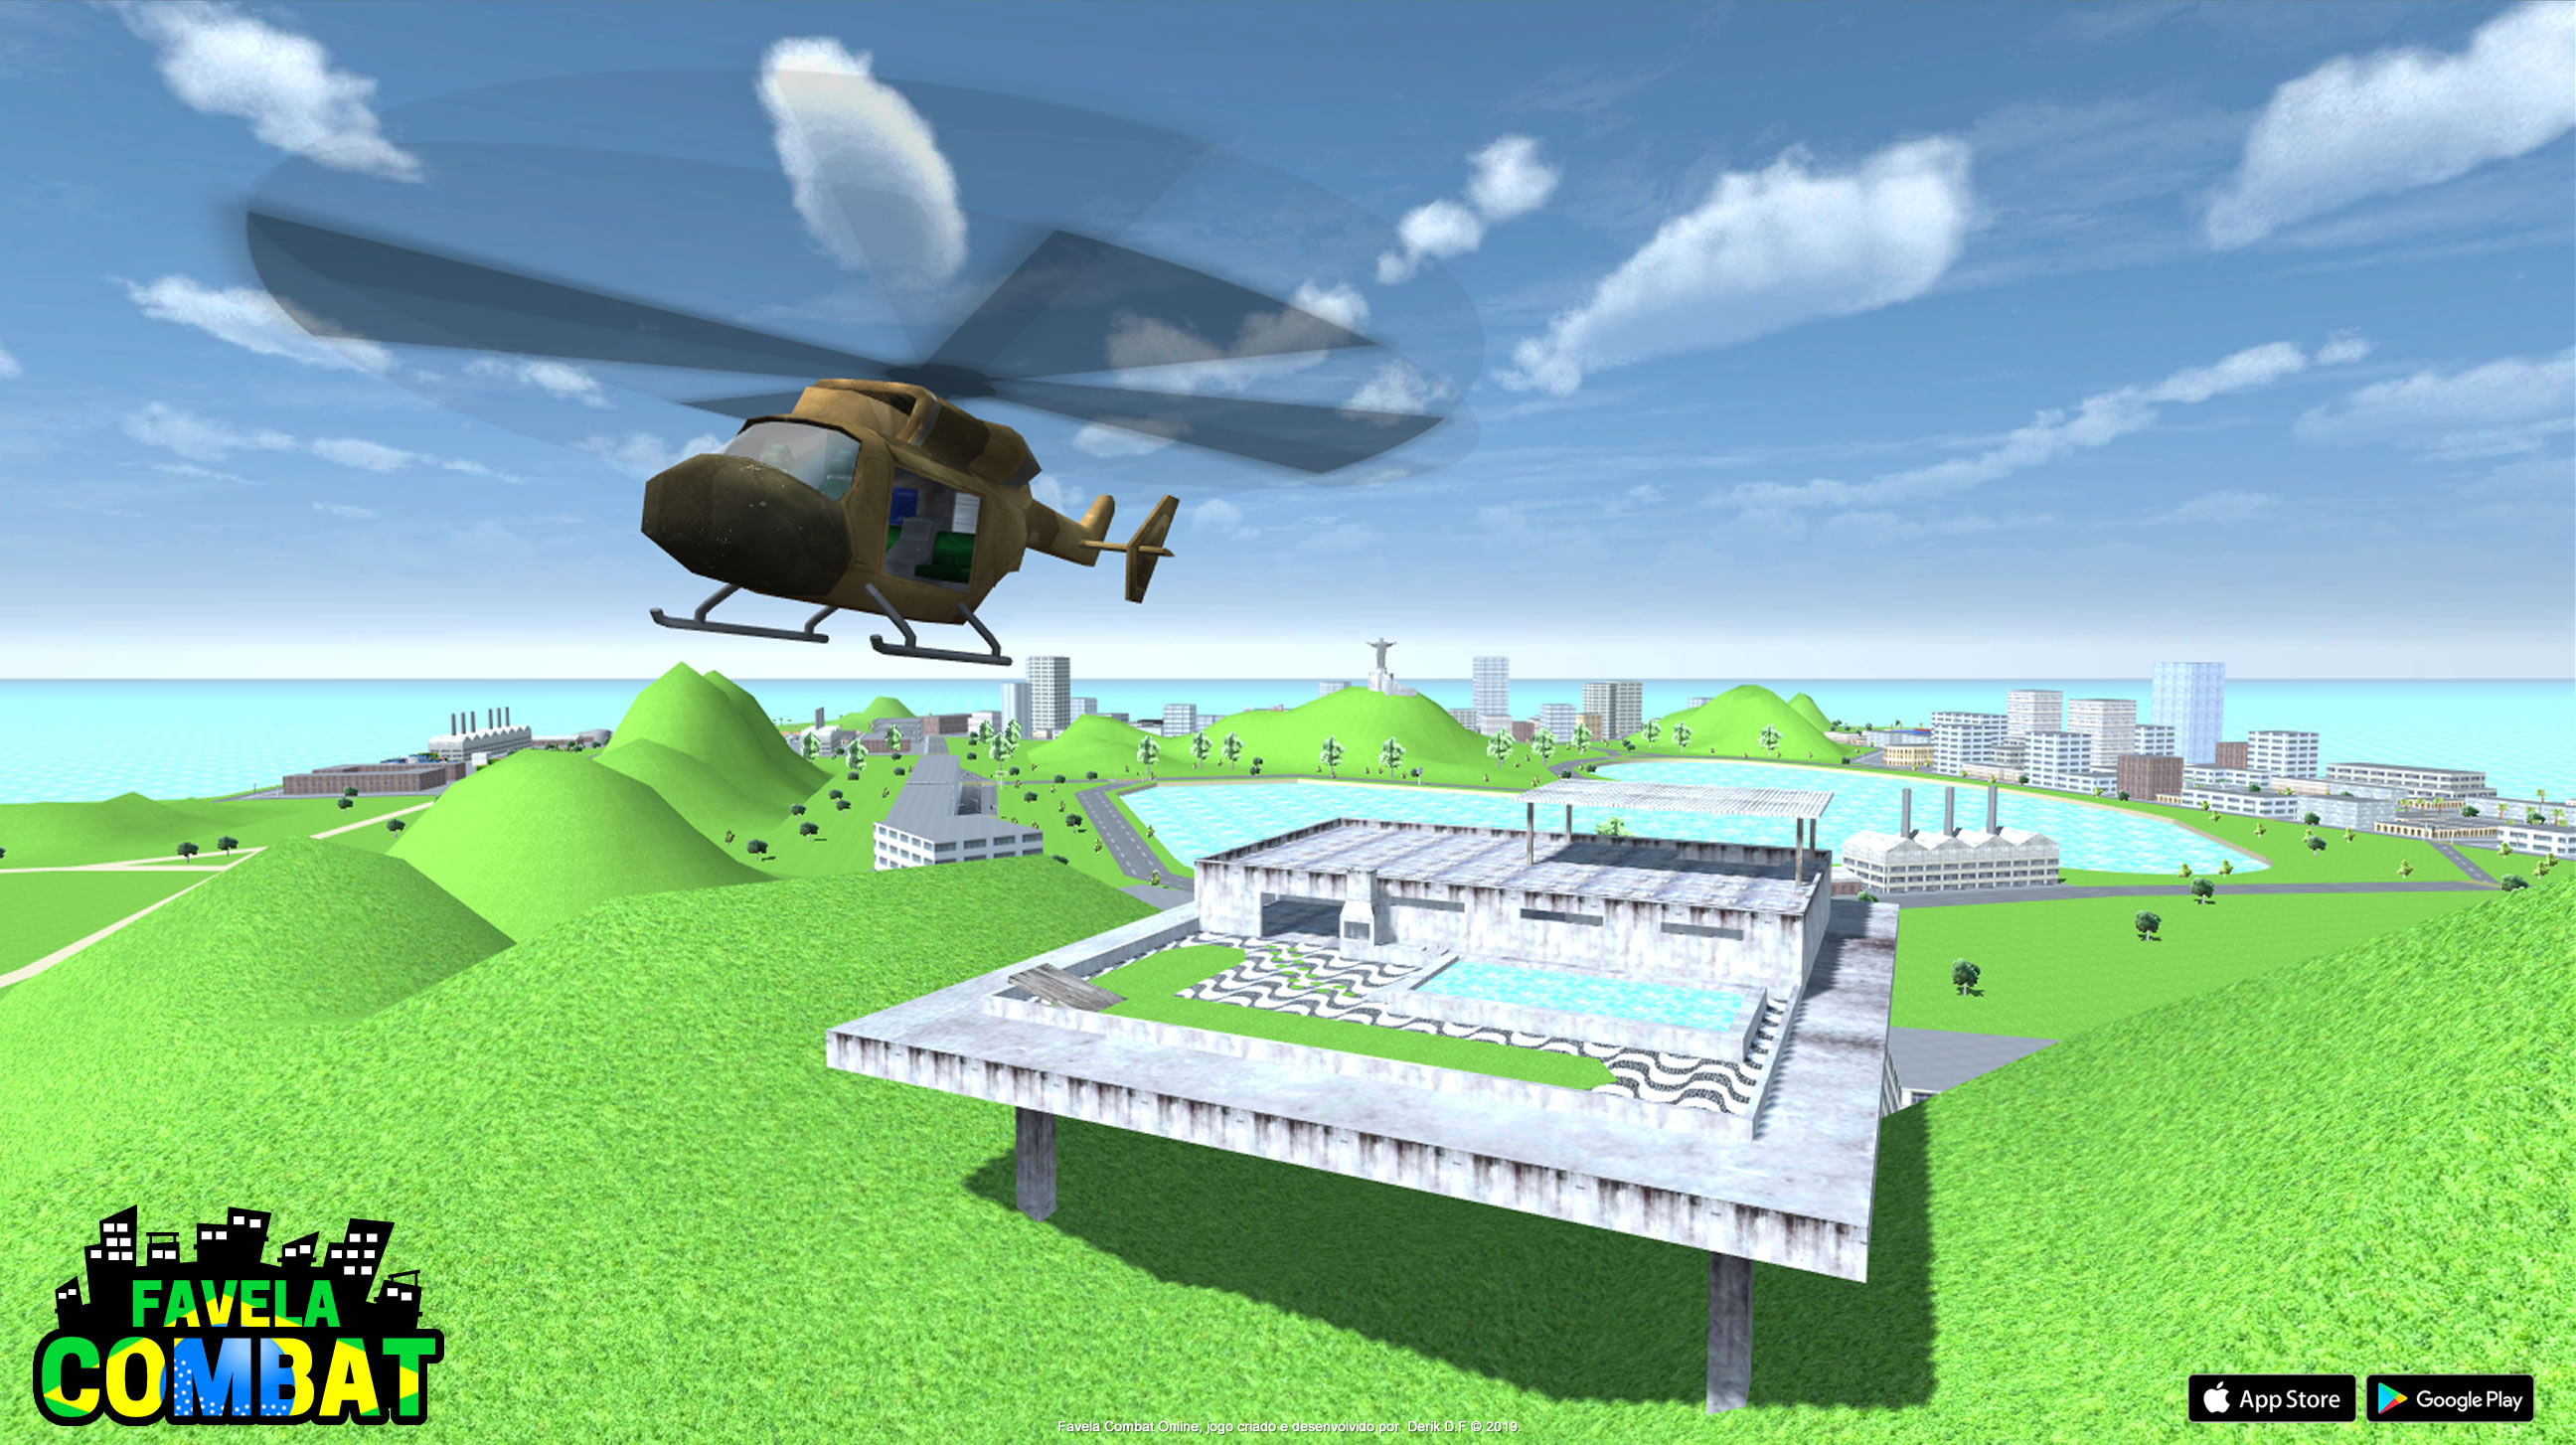 favela-combat-wallpaper-helicopter 02.jpg